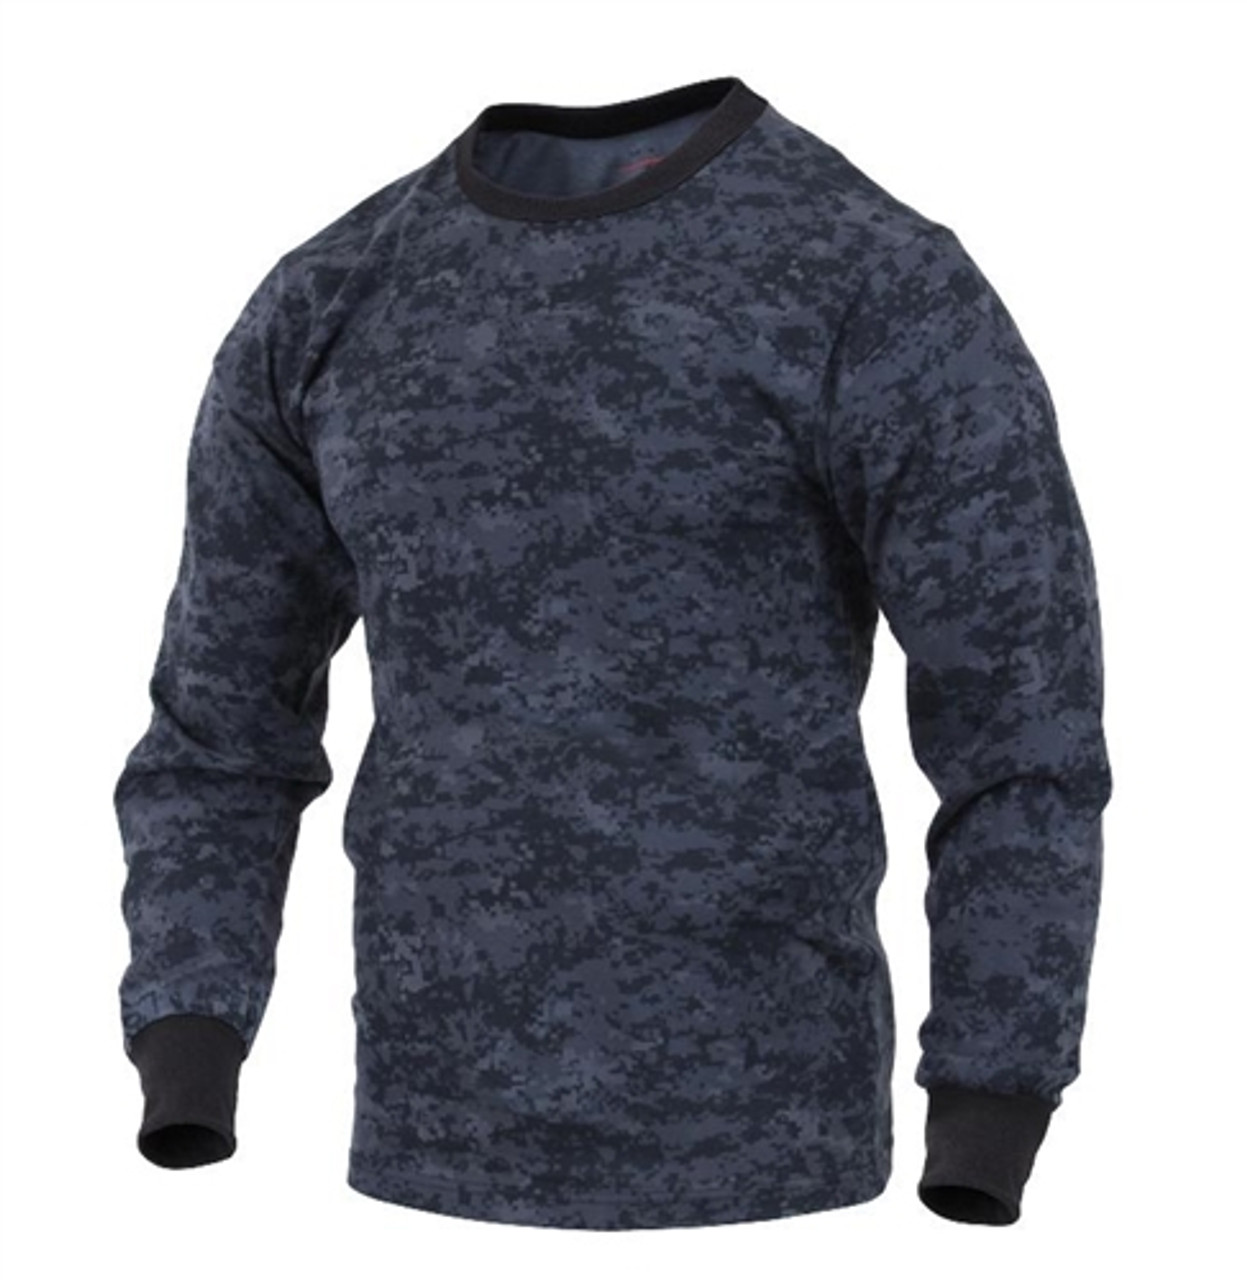 Long Sleeve Midnight Digital Camo T-Shirt from Hessen Tactical